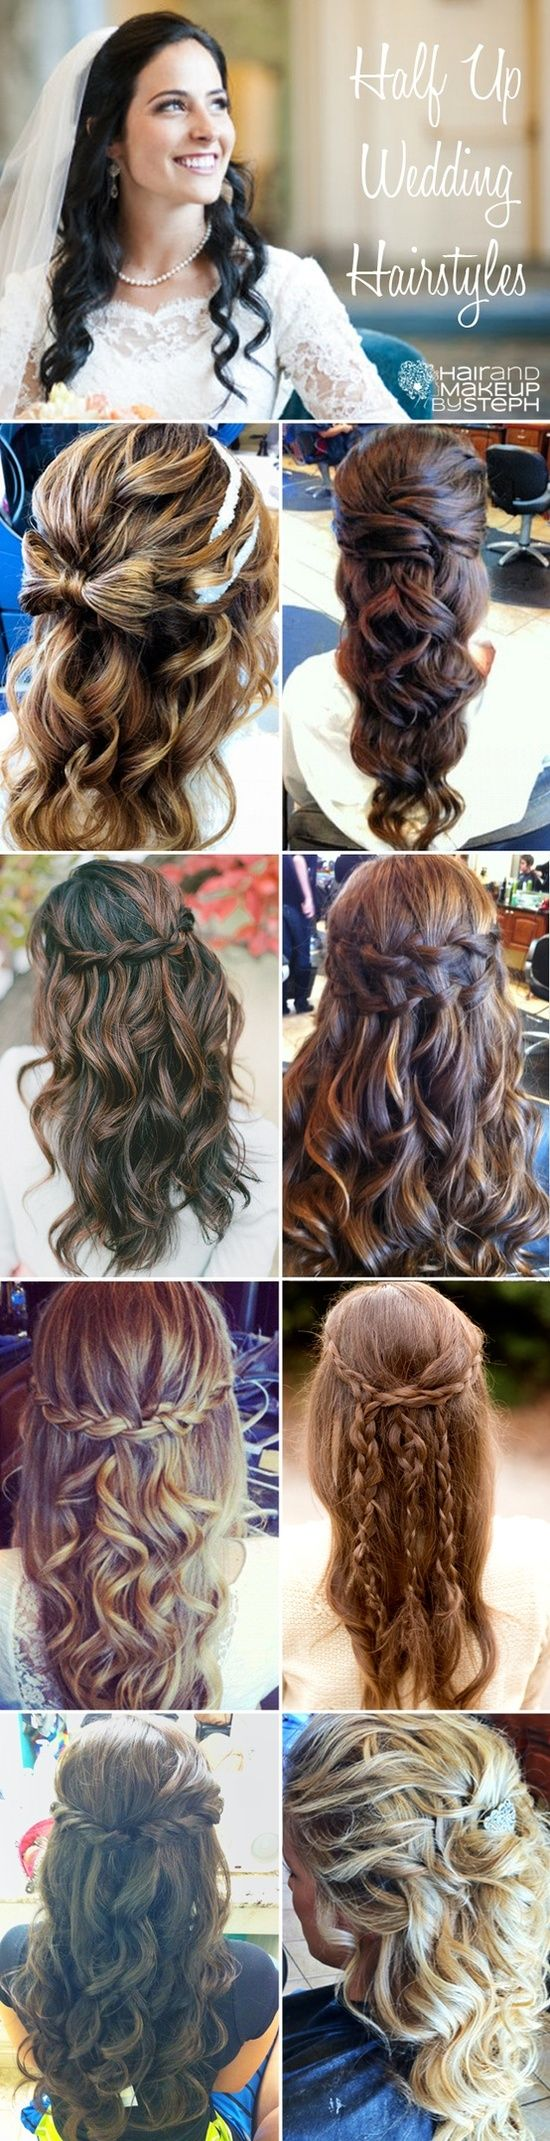 Different ways to have your hair half up @ wish-upon-a-weddingwish-upon-a-wedding